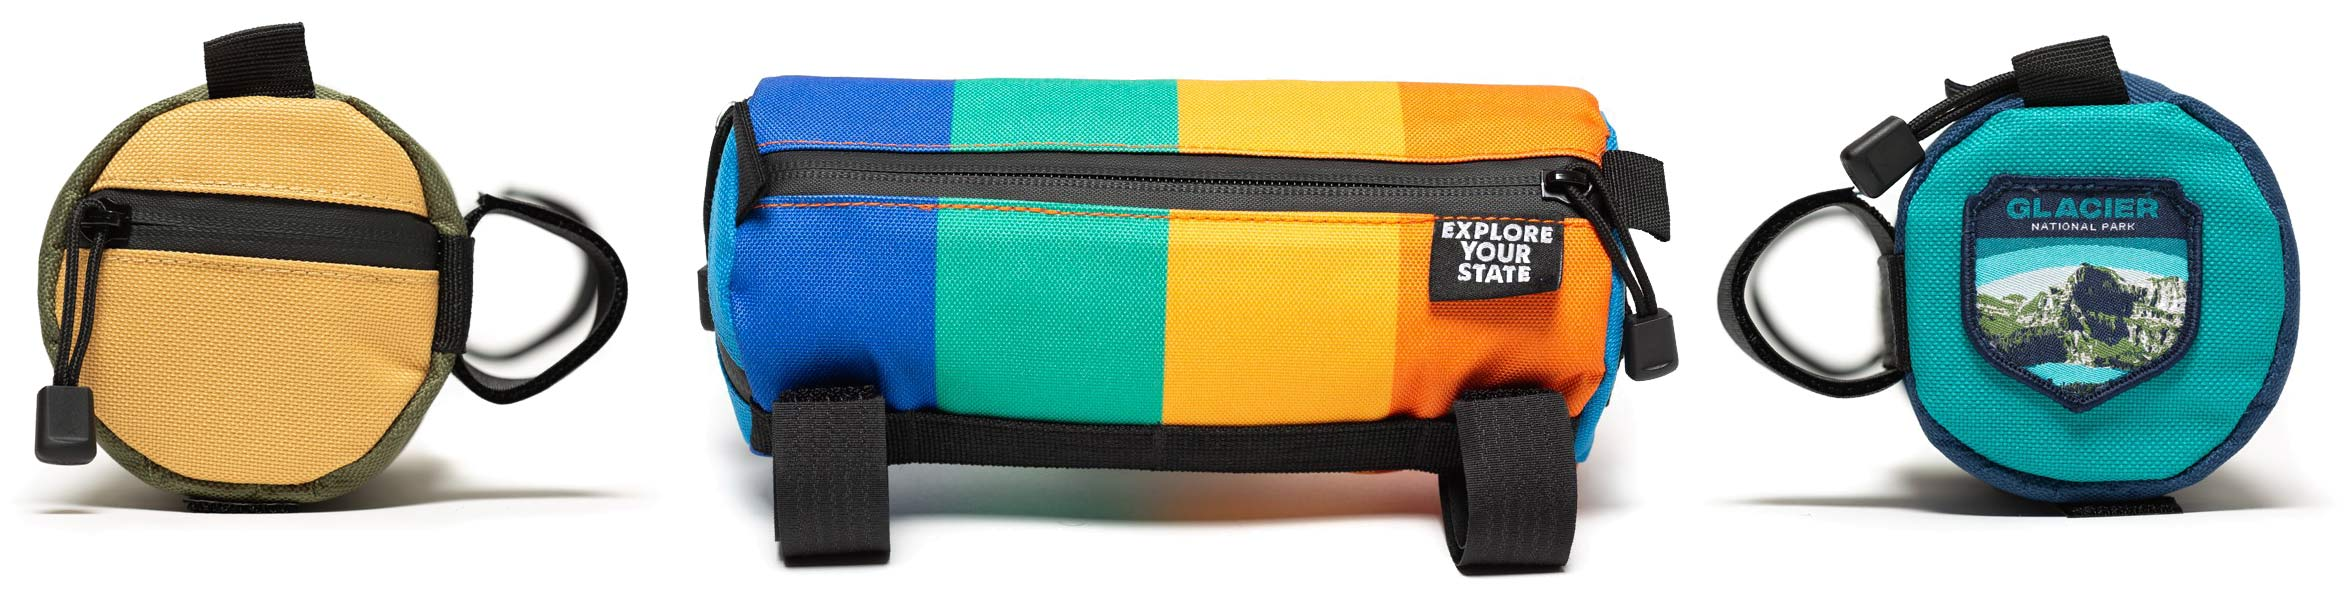 State X NPF collection, State Bicycle x National Park Foundation limited-edition bikes & gear,handlebar bag details